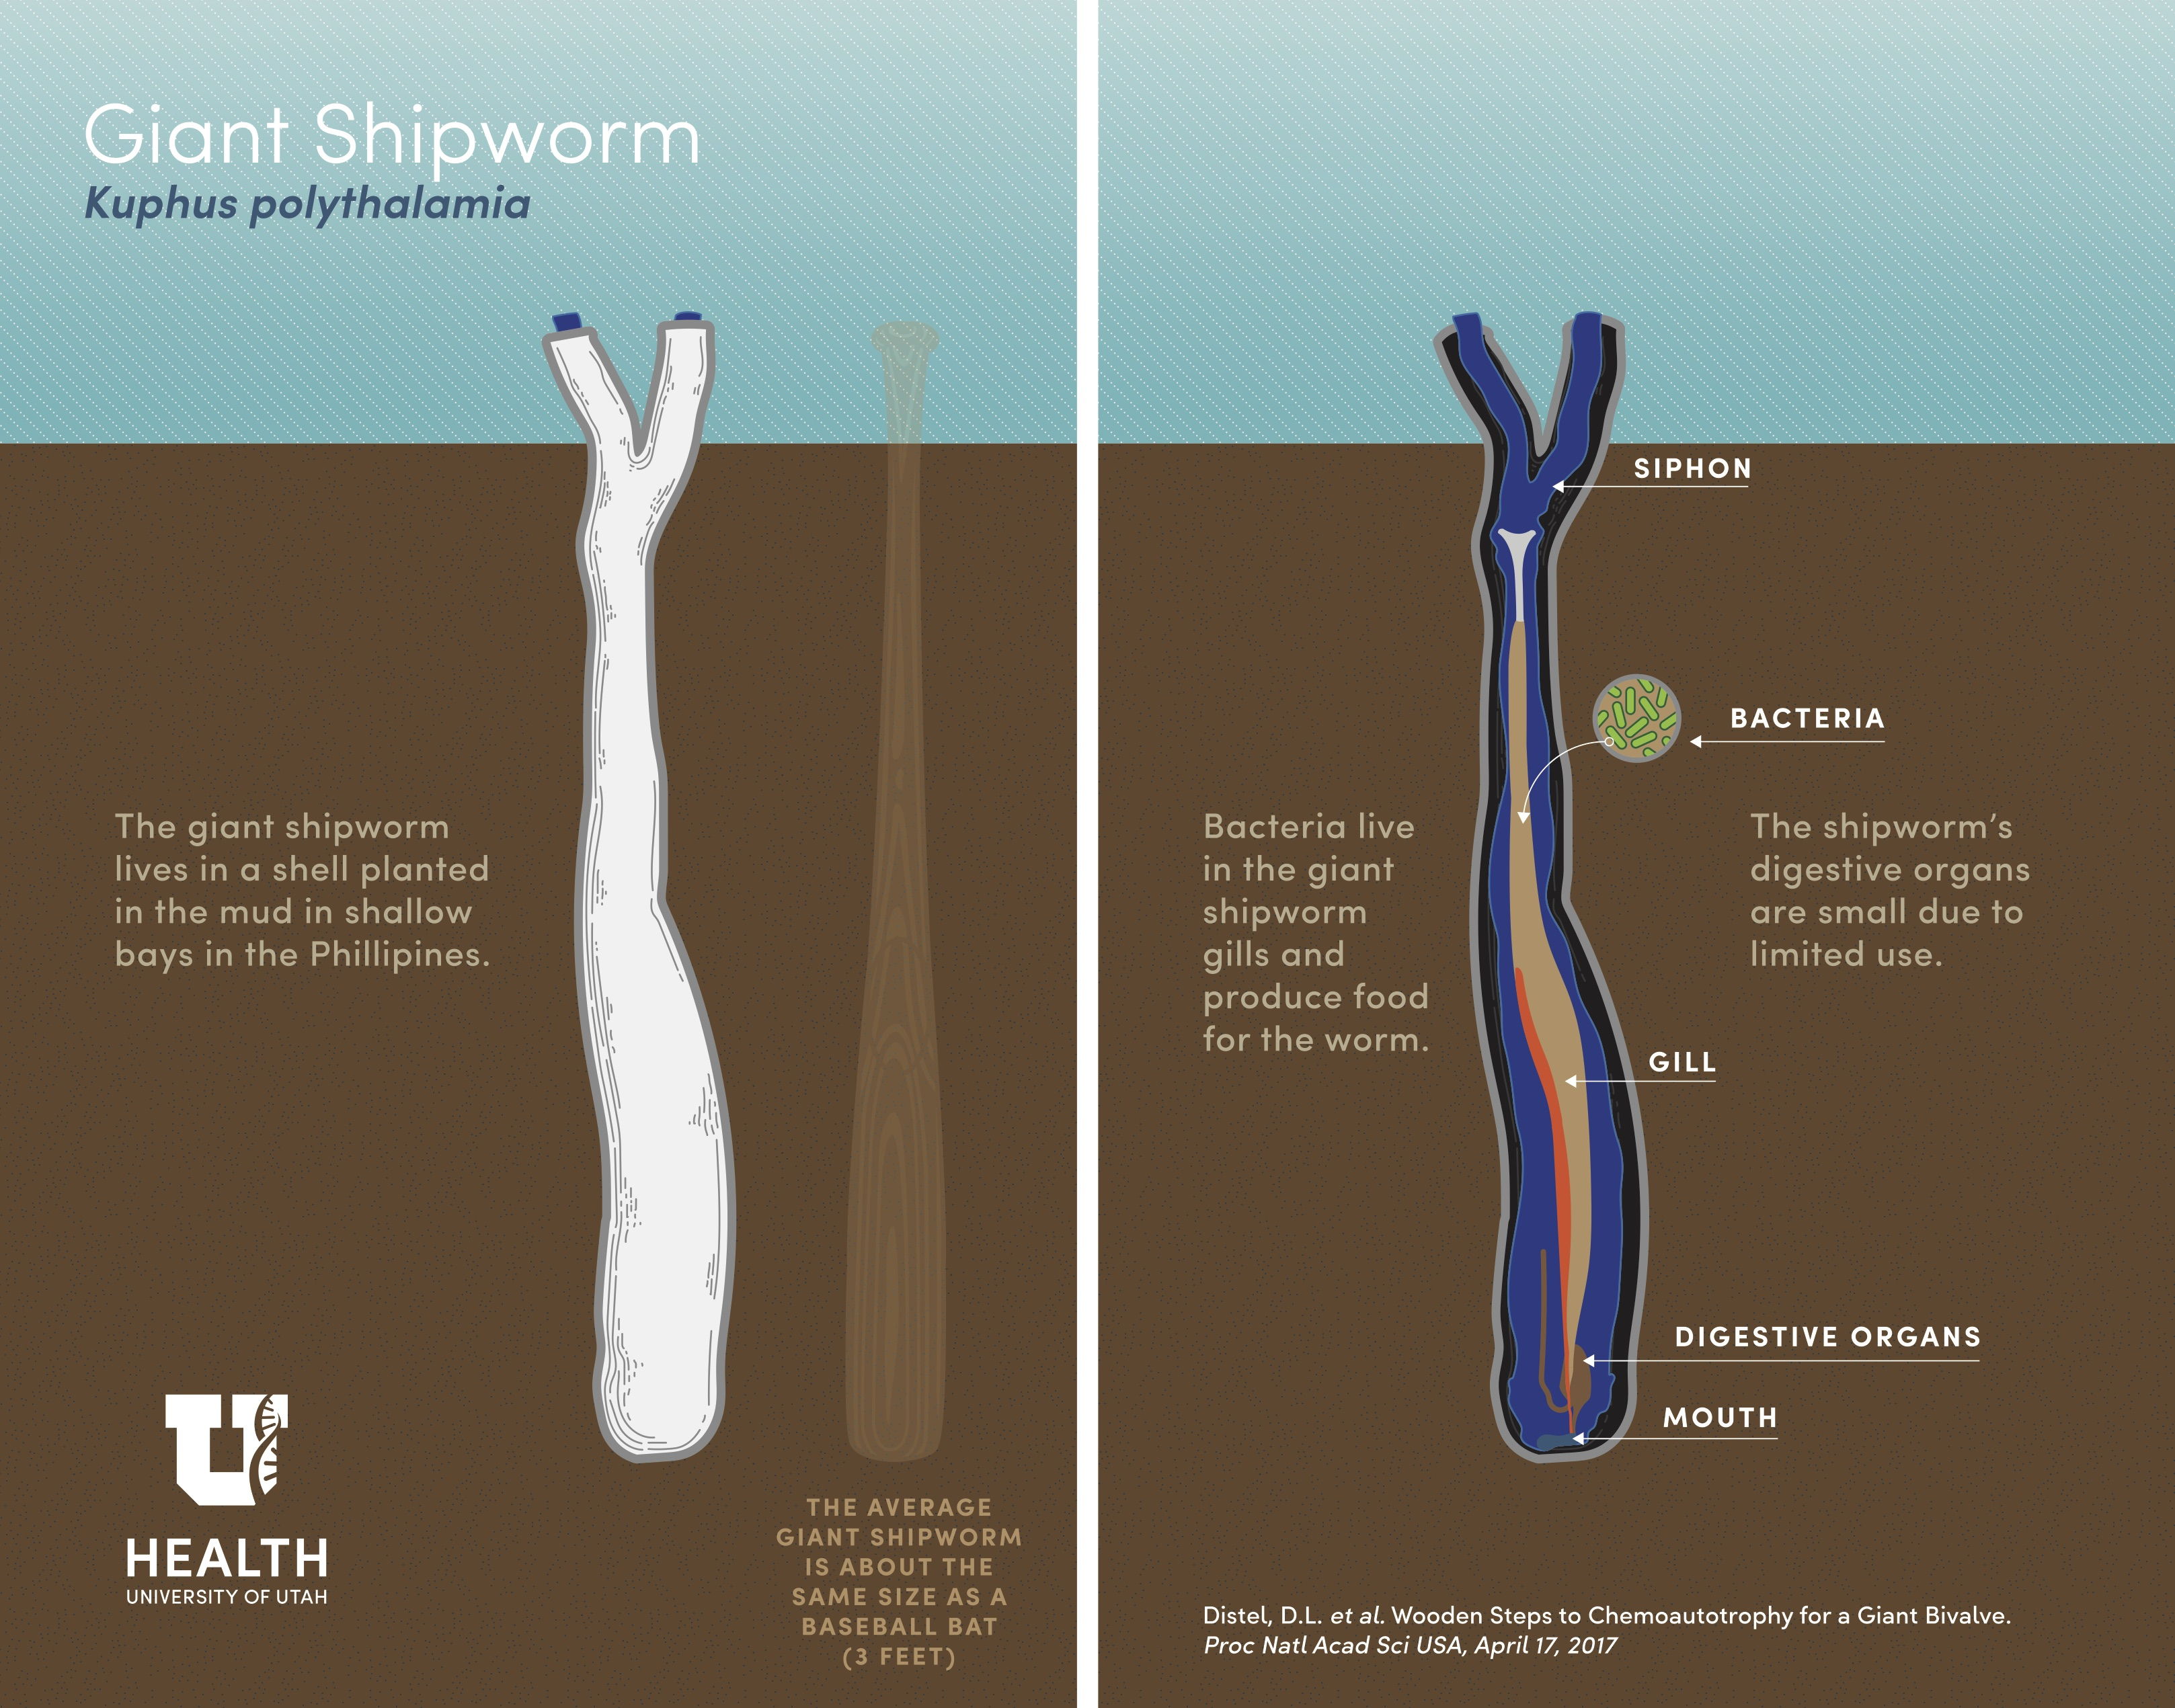 The giant shipworm is about the size of a baseball bat. Image: University of Utah/Washington Post. [click to expand]